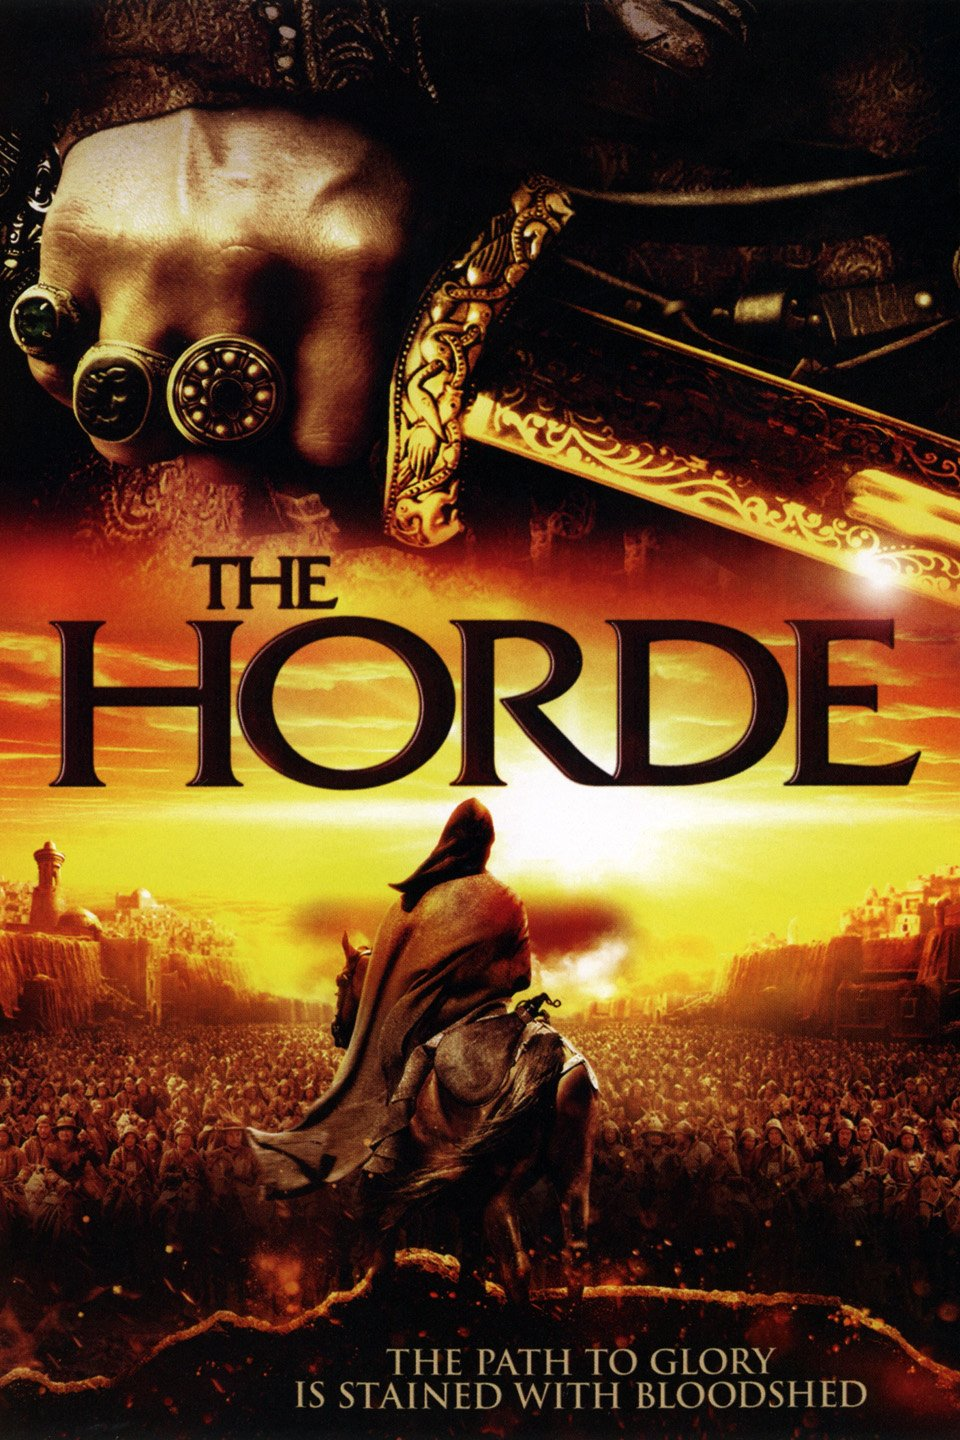 The Horde-Orda